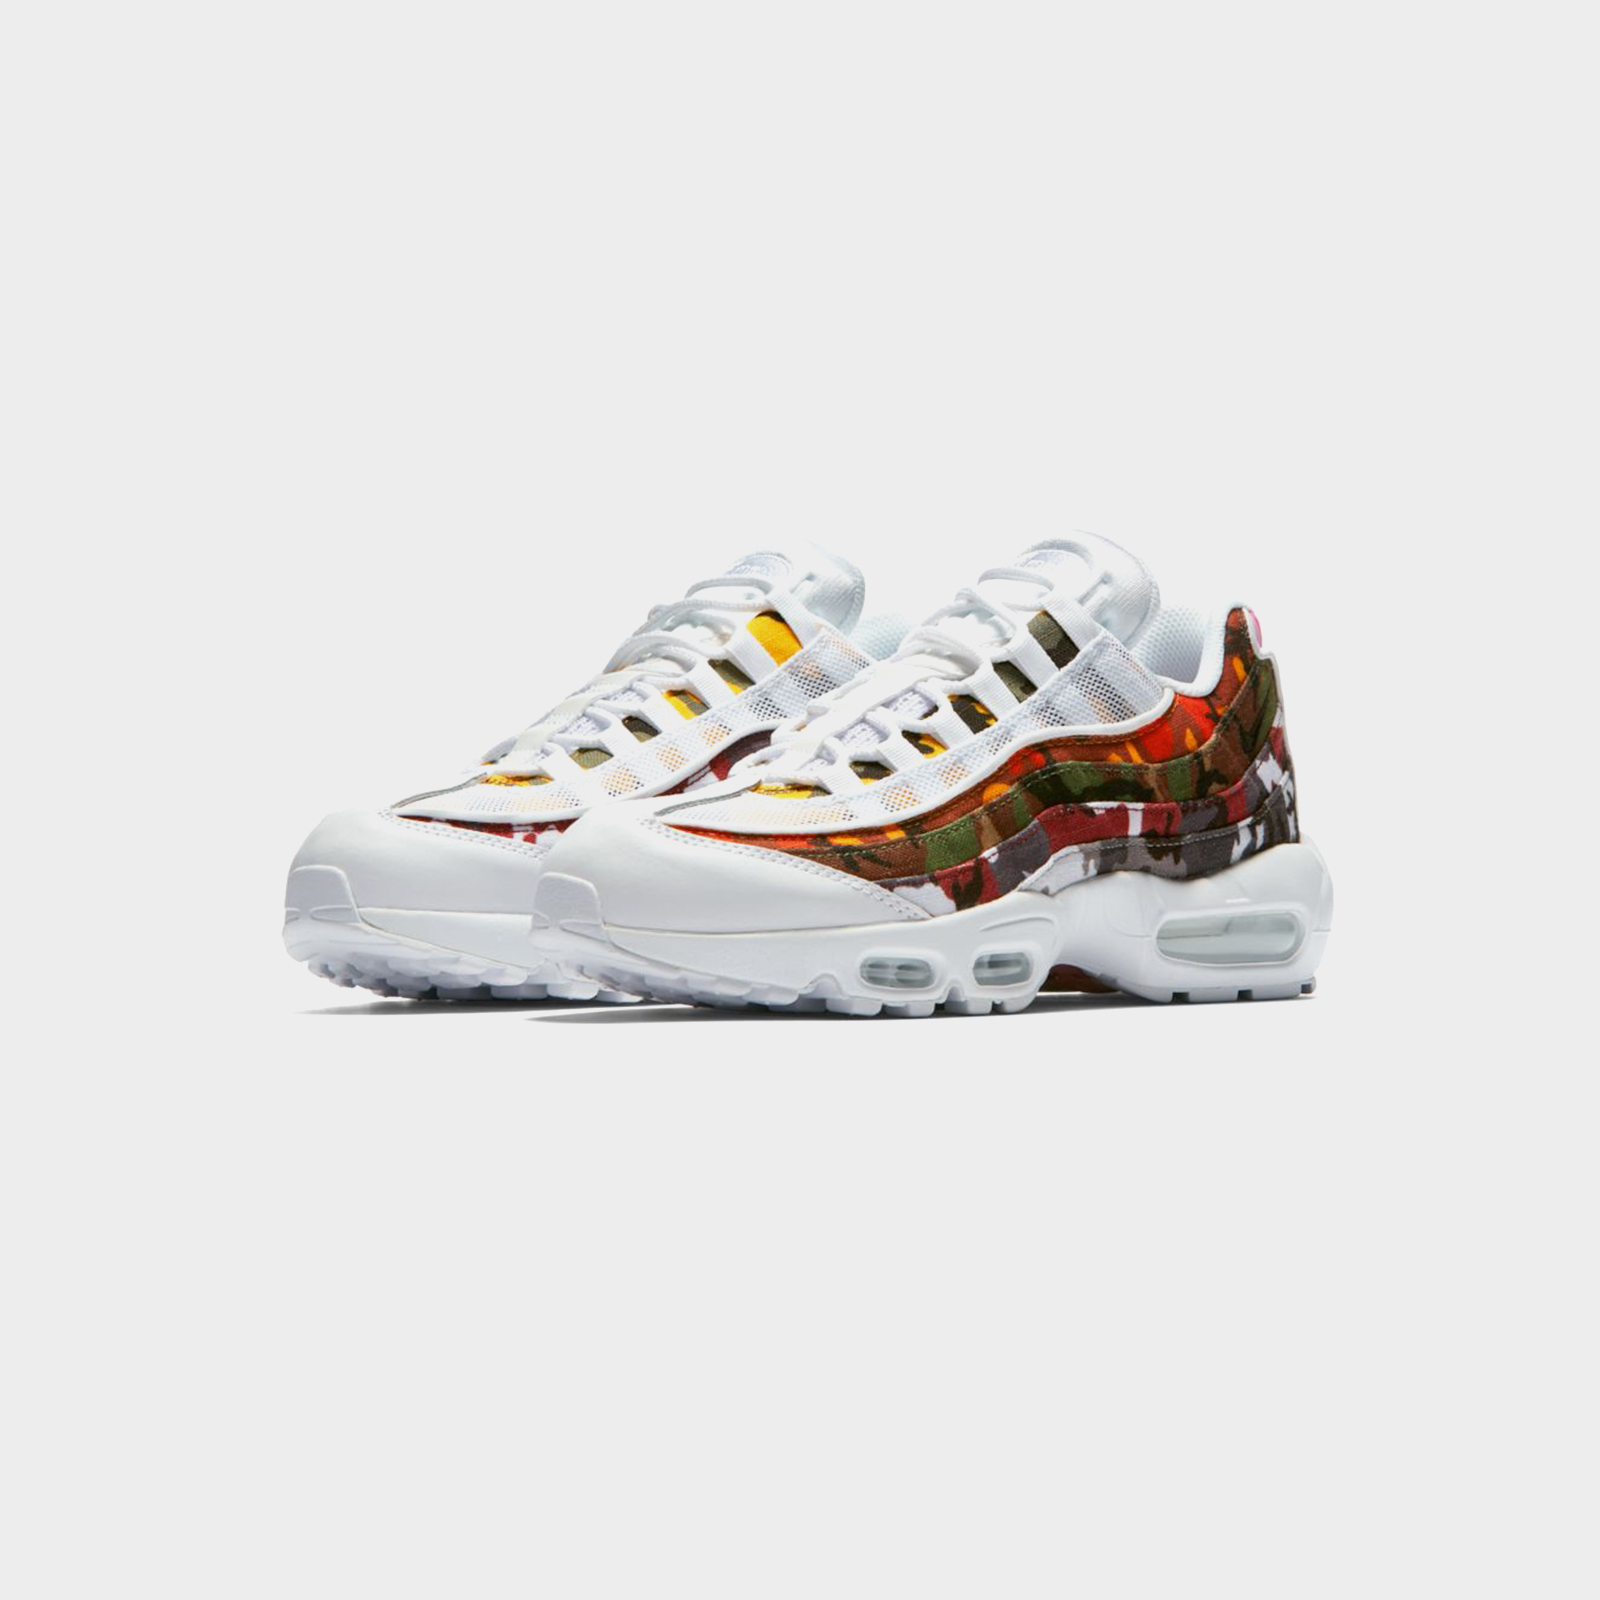 Nike Air Max 95 ERDL Party - Ar4473-100 - Sneakersnstuff  c4cb3afd3